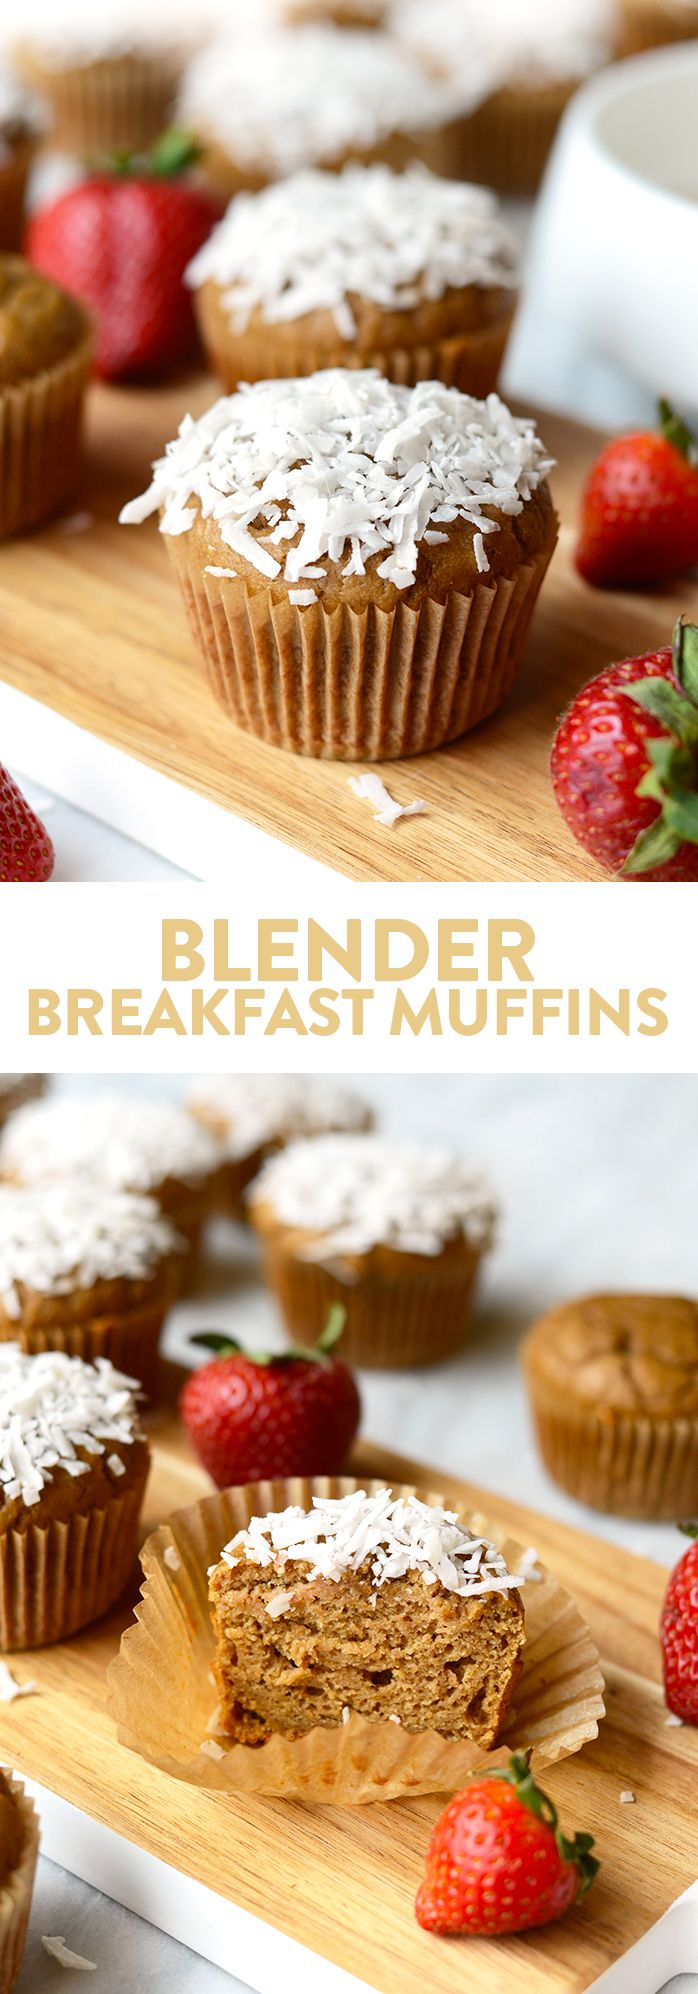 These delicious whole grain blender breakfast muffins are made with pureed strawberries and bananas and 100% white whole wheat flour for a healthy on-the-go breakfast.